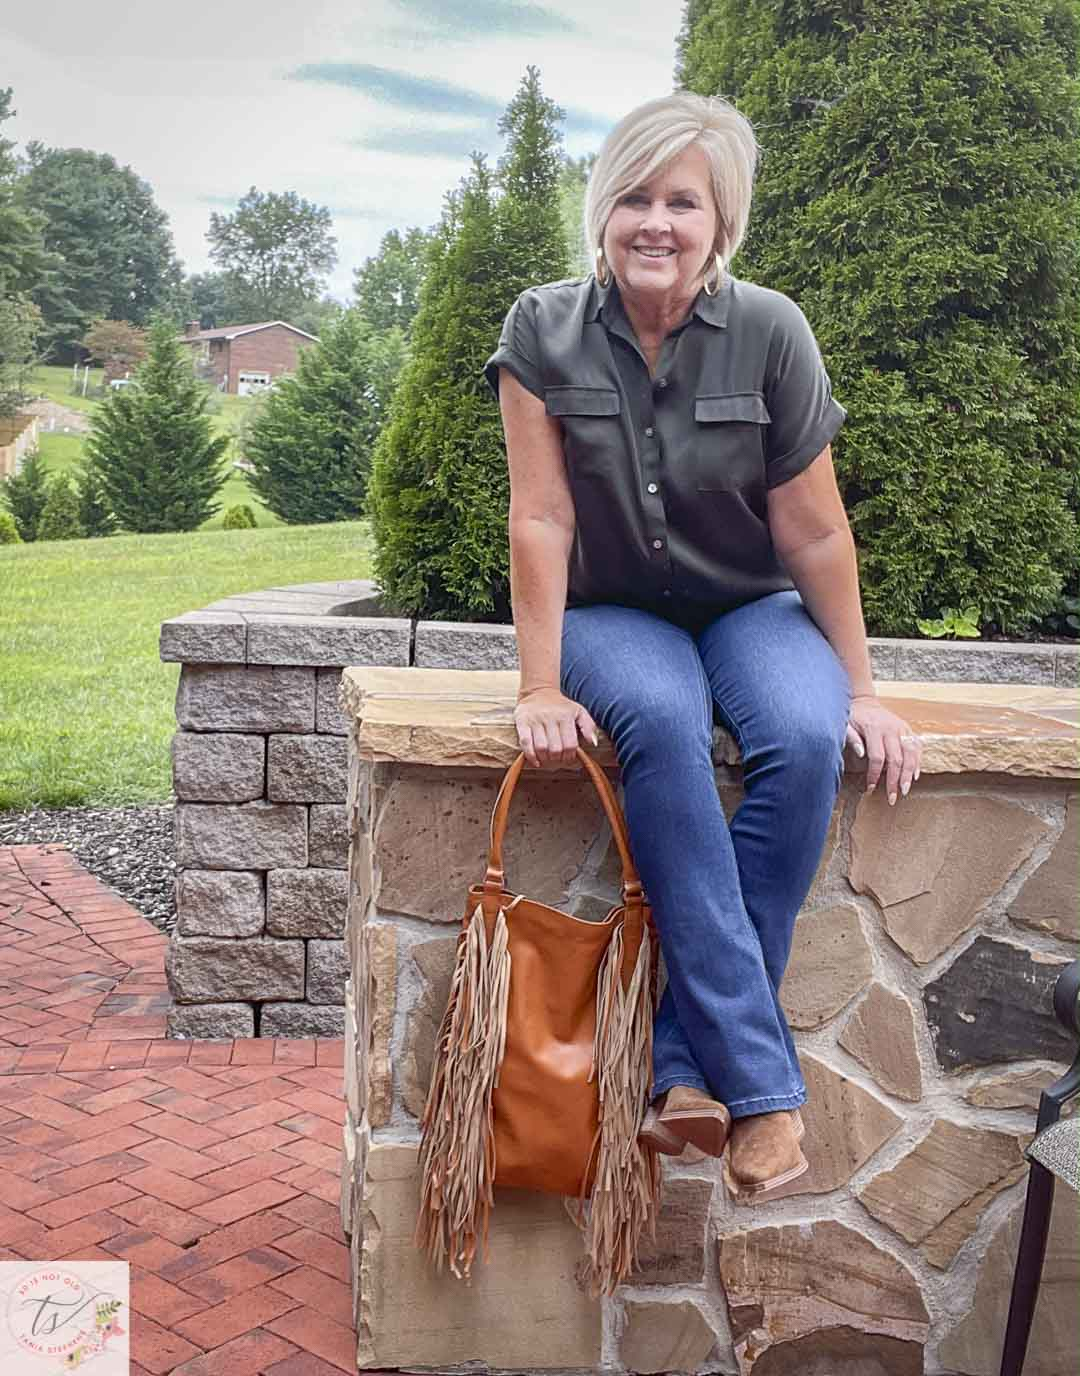 Over 40 Fashion Blogger, Tania Stephens, is sitting on a wall wearing an olive button-up shirt, bootcut jeans, and suede ankle boots